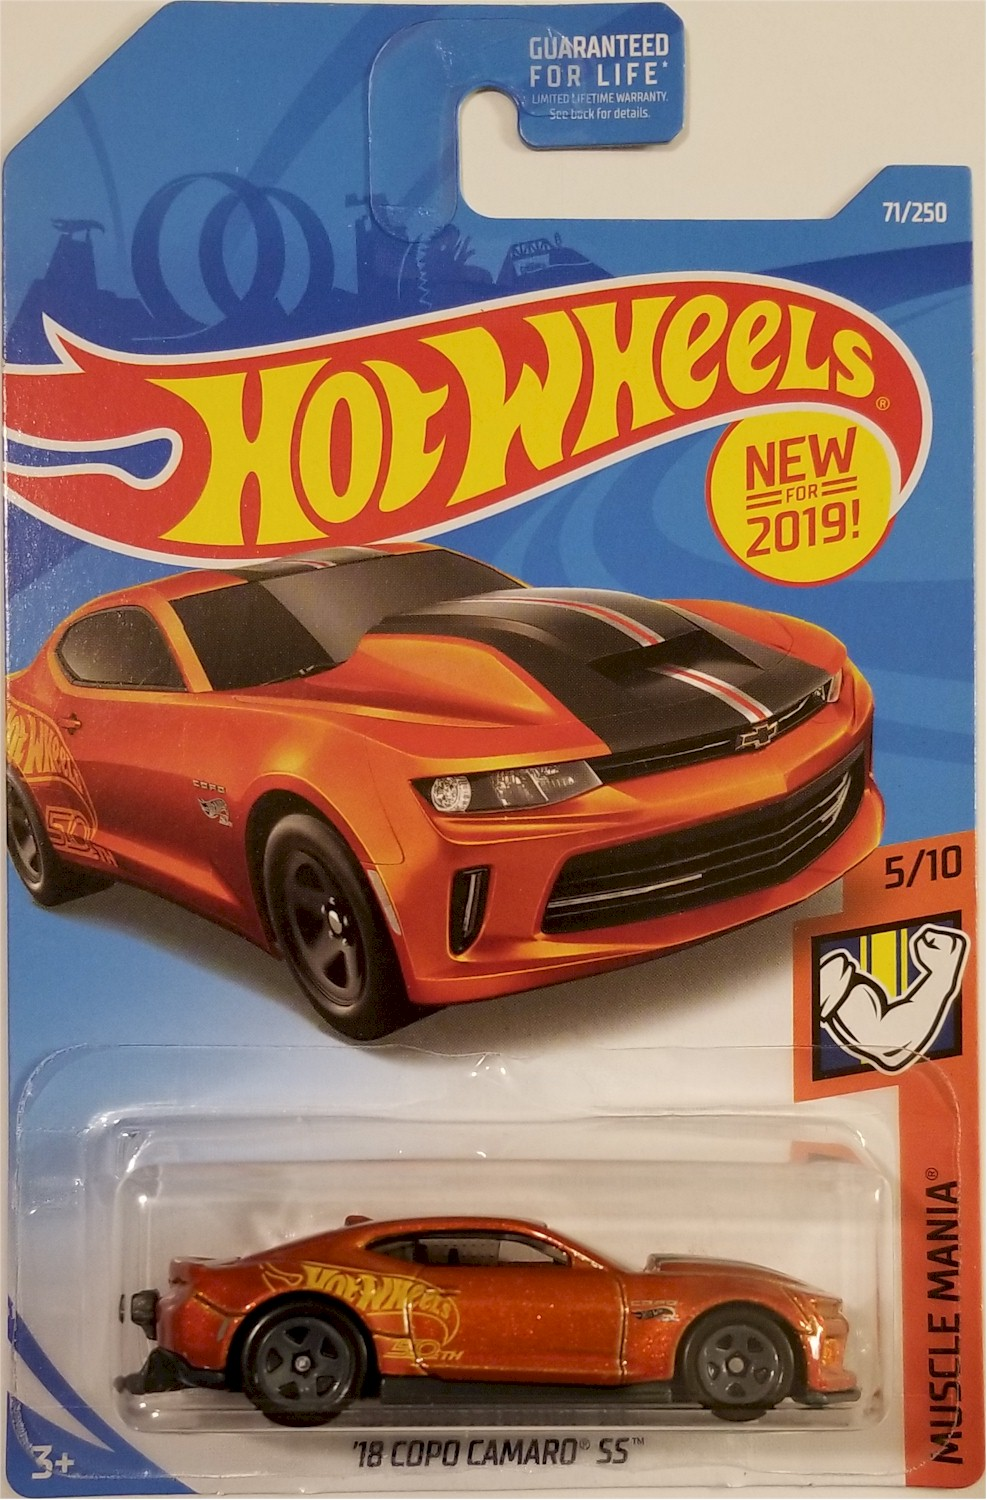 Copo Camaro Price >> Details About Hot Wheels 2019 Muscle Mania 5 10 18 Copo Camaro Ss 71 250 Bbfyb69